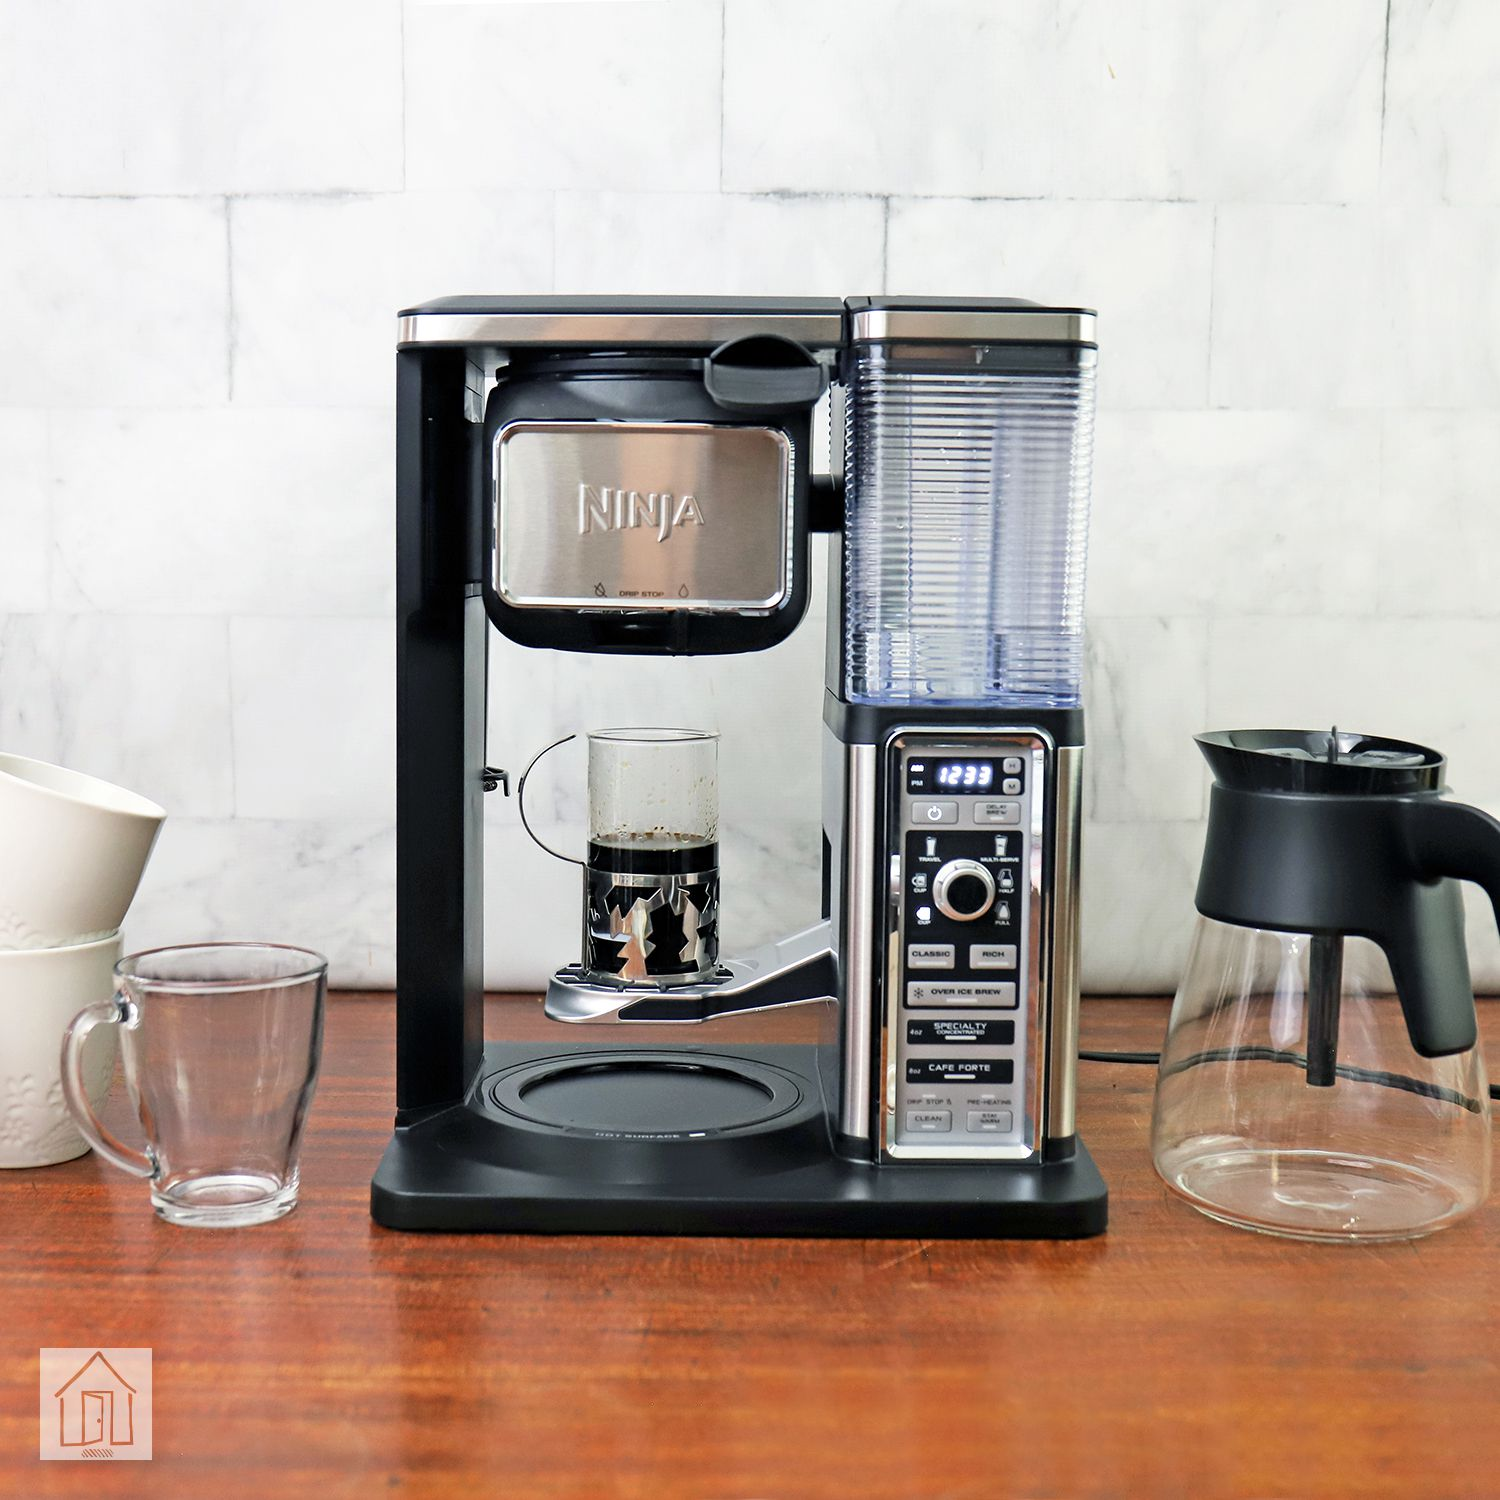 Ninja Cf091 Coffee Bar System Review This Machine Does It All